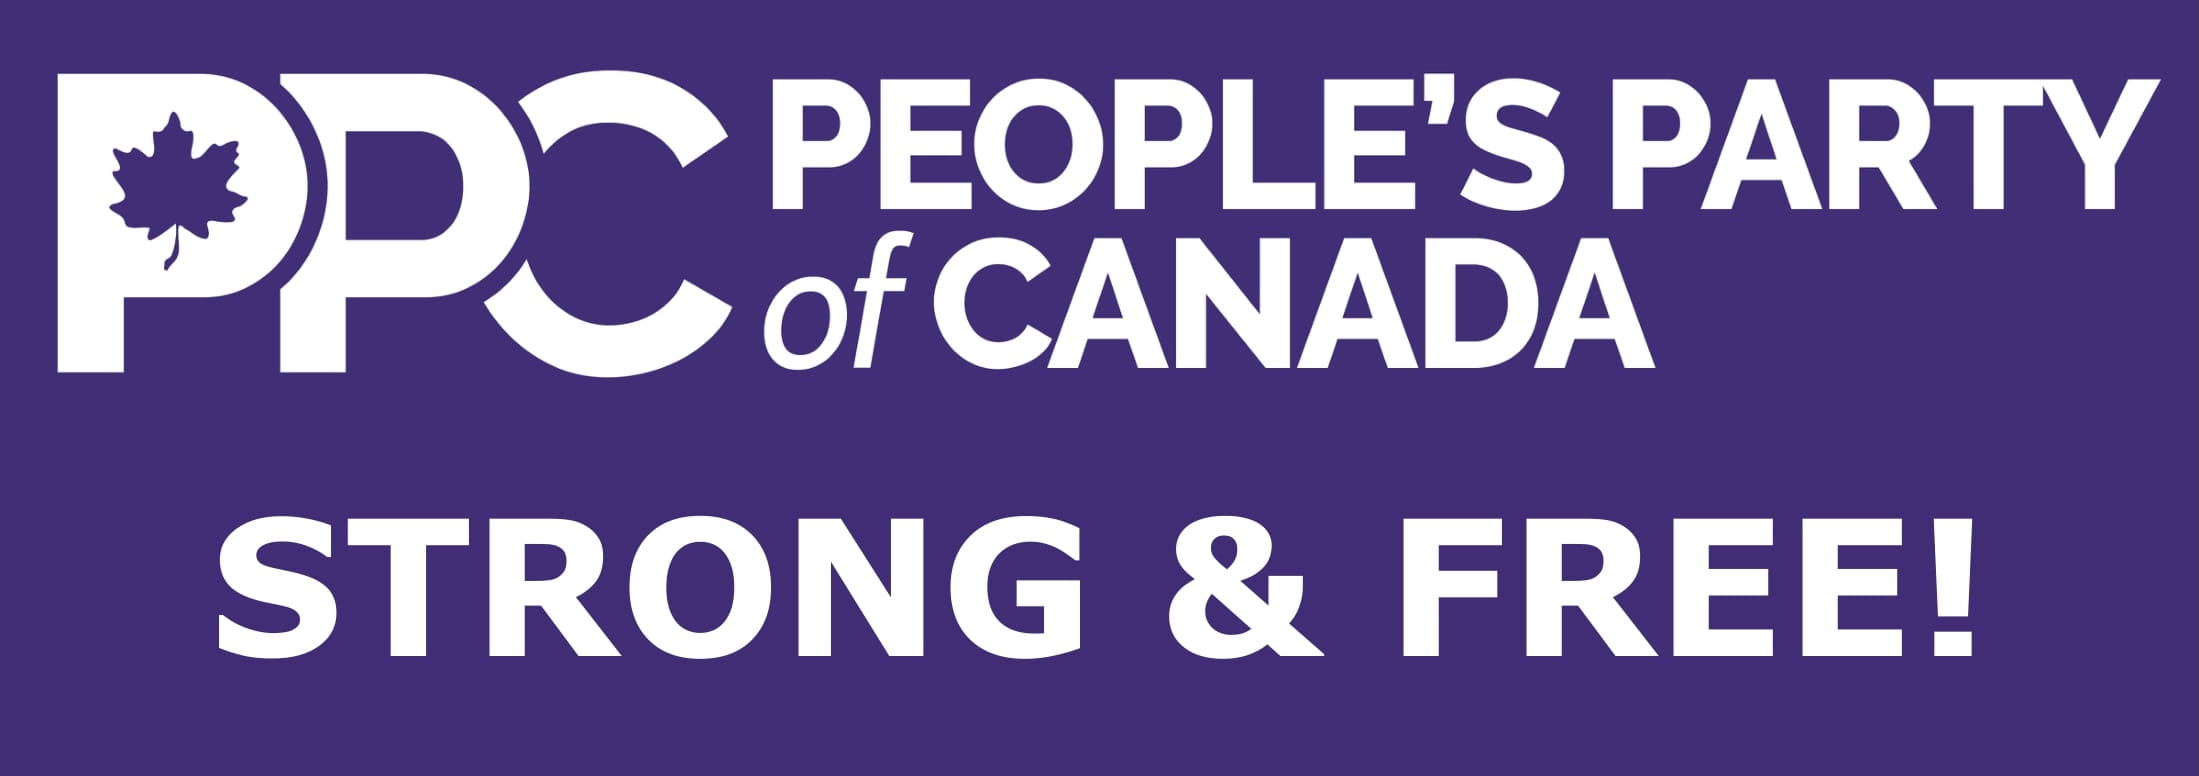 People's Party of Canada - Brantford-Brant